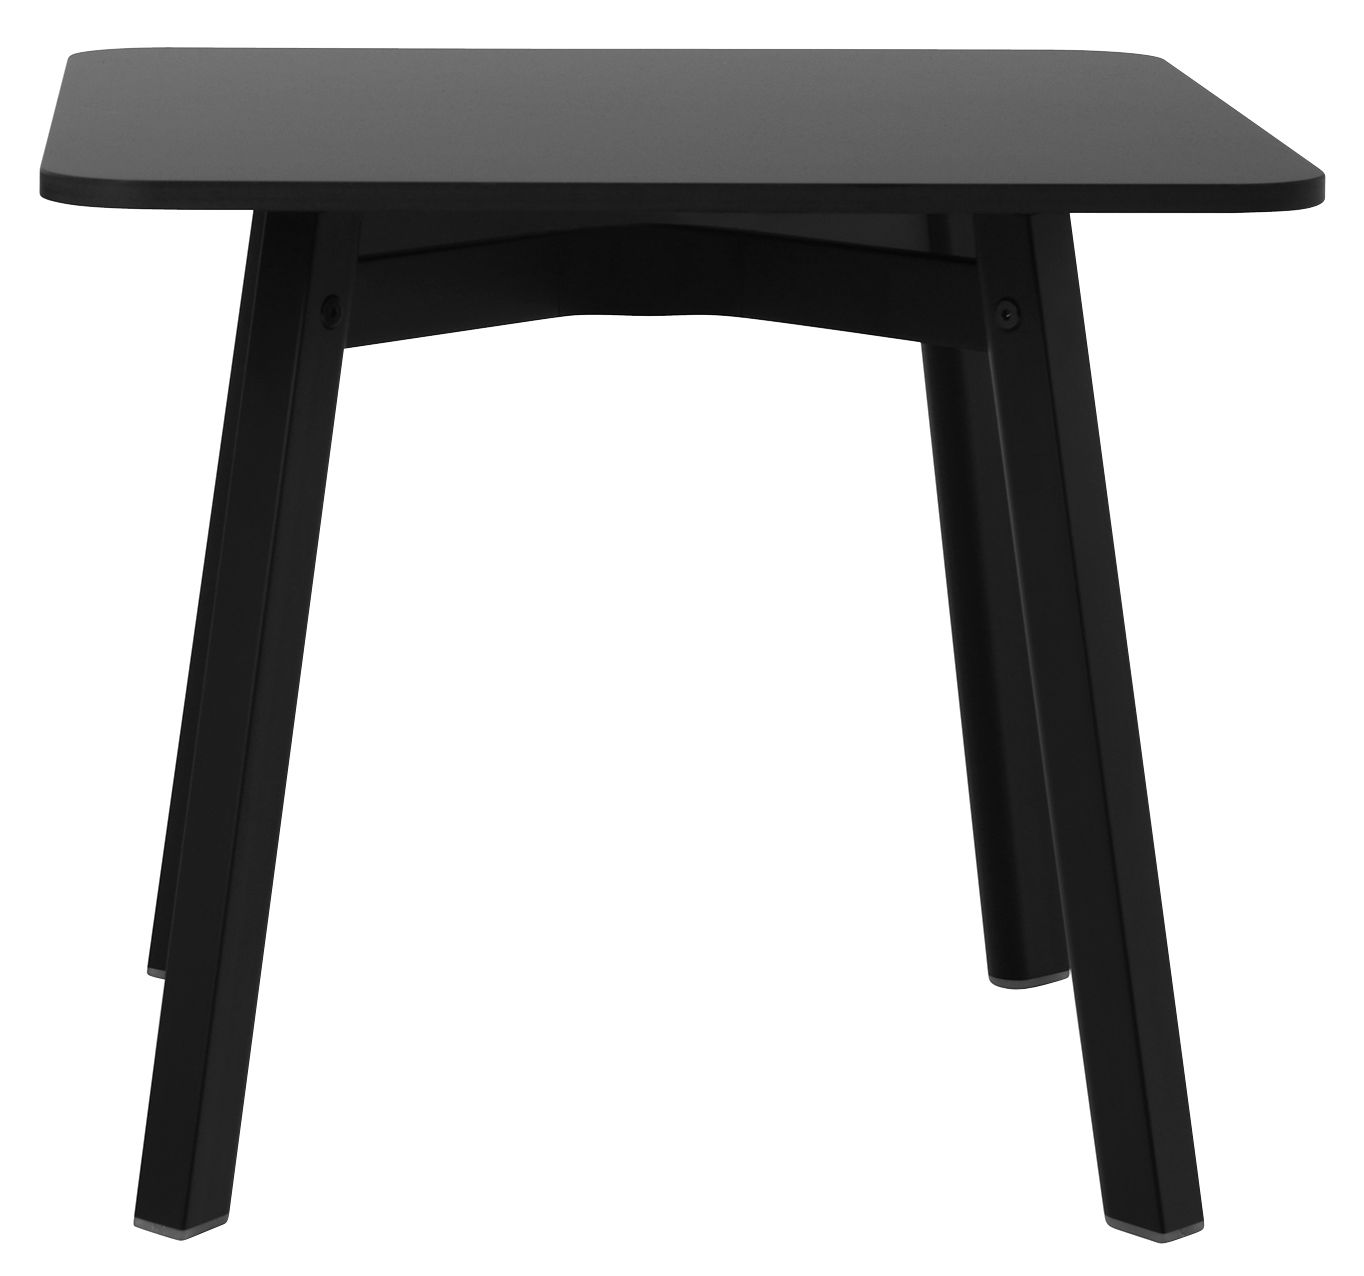 Furniture - Coffee Tables - Su Coffee table - / 55 x 55 cm by Emeco - Black - Aluminium recyclé, HPL